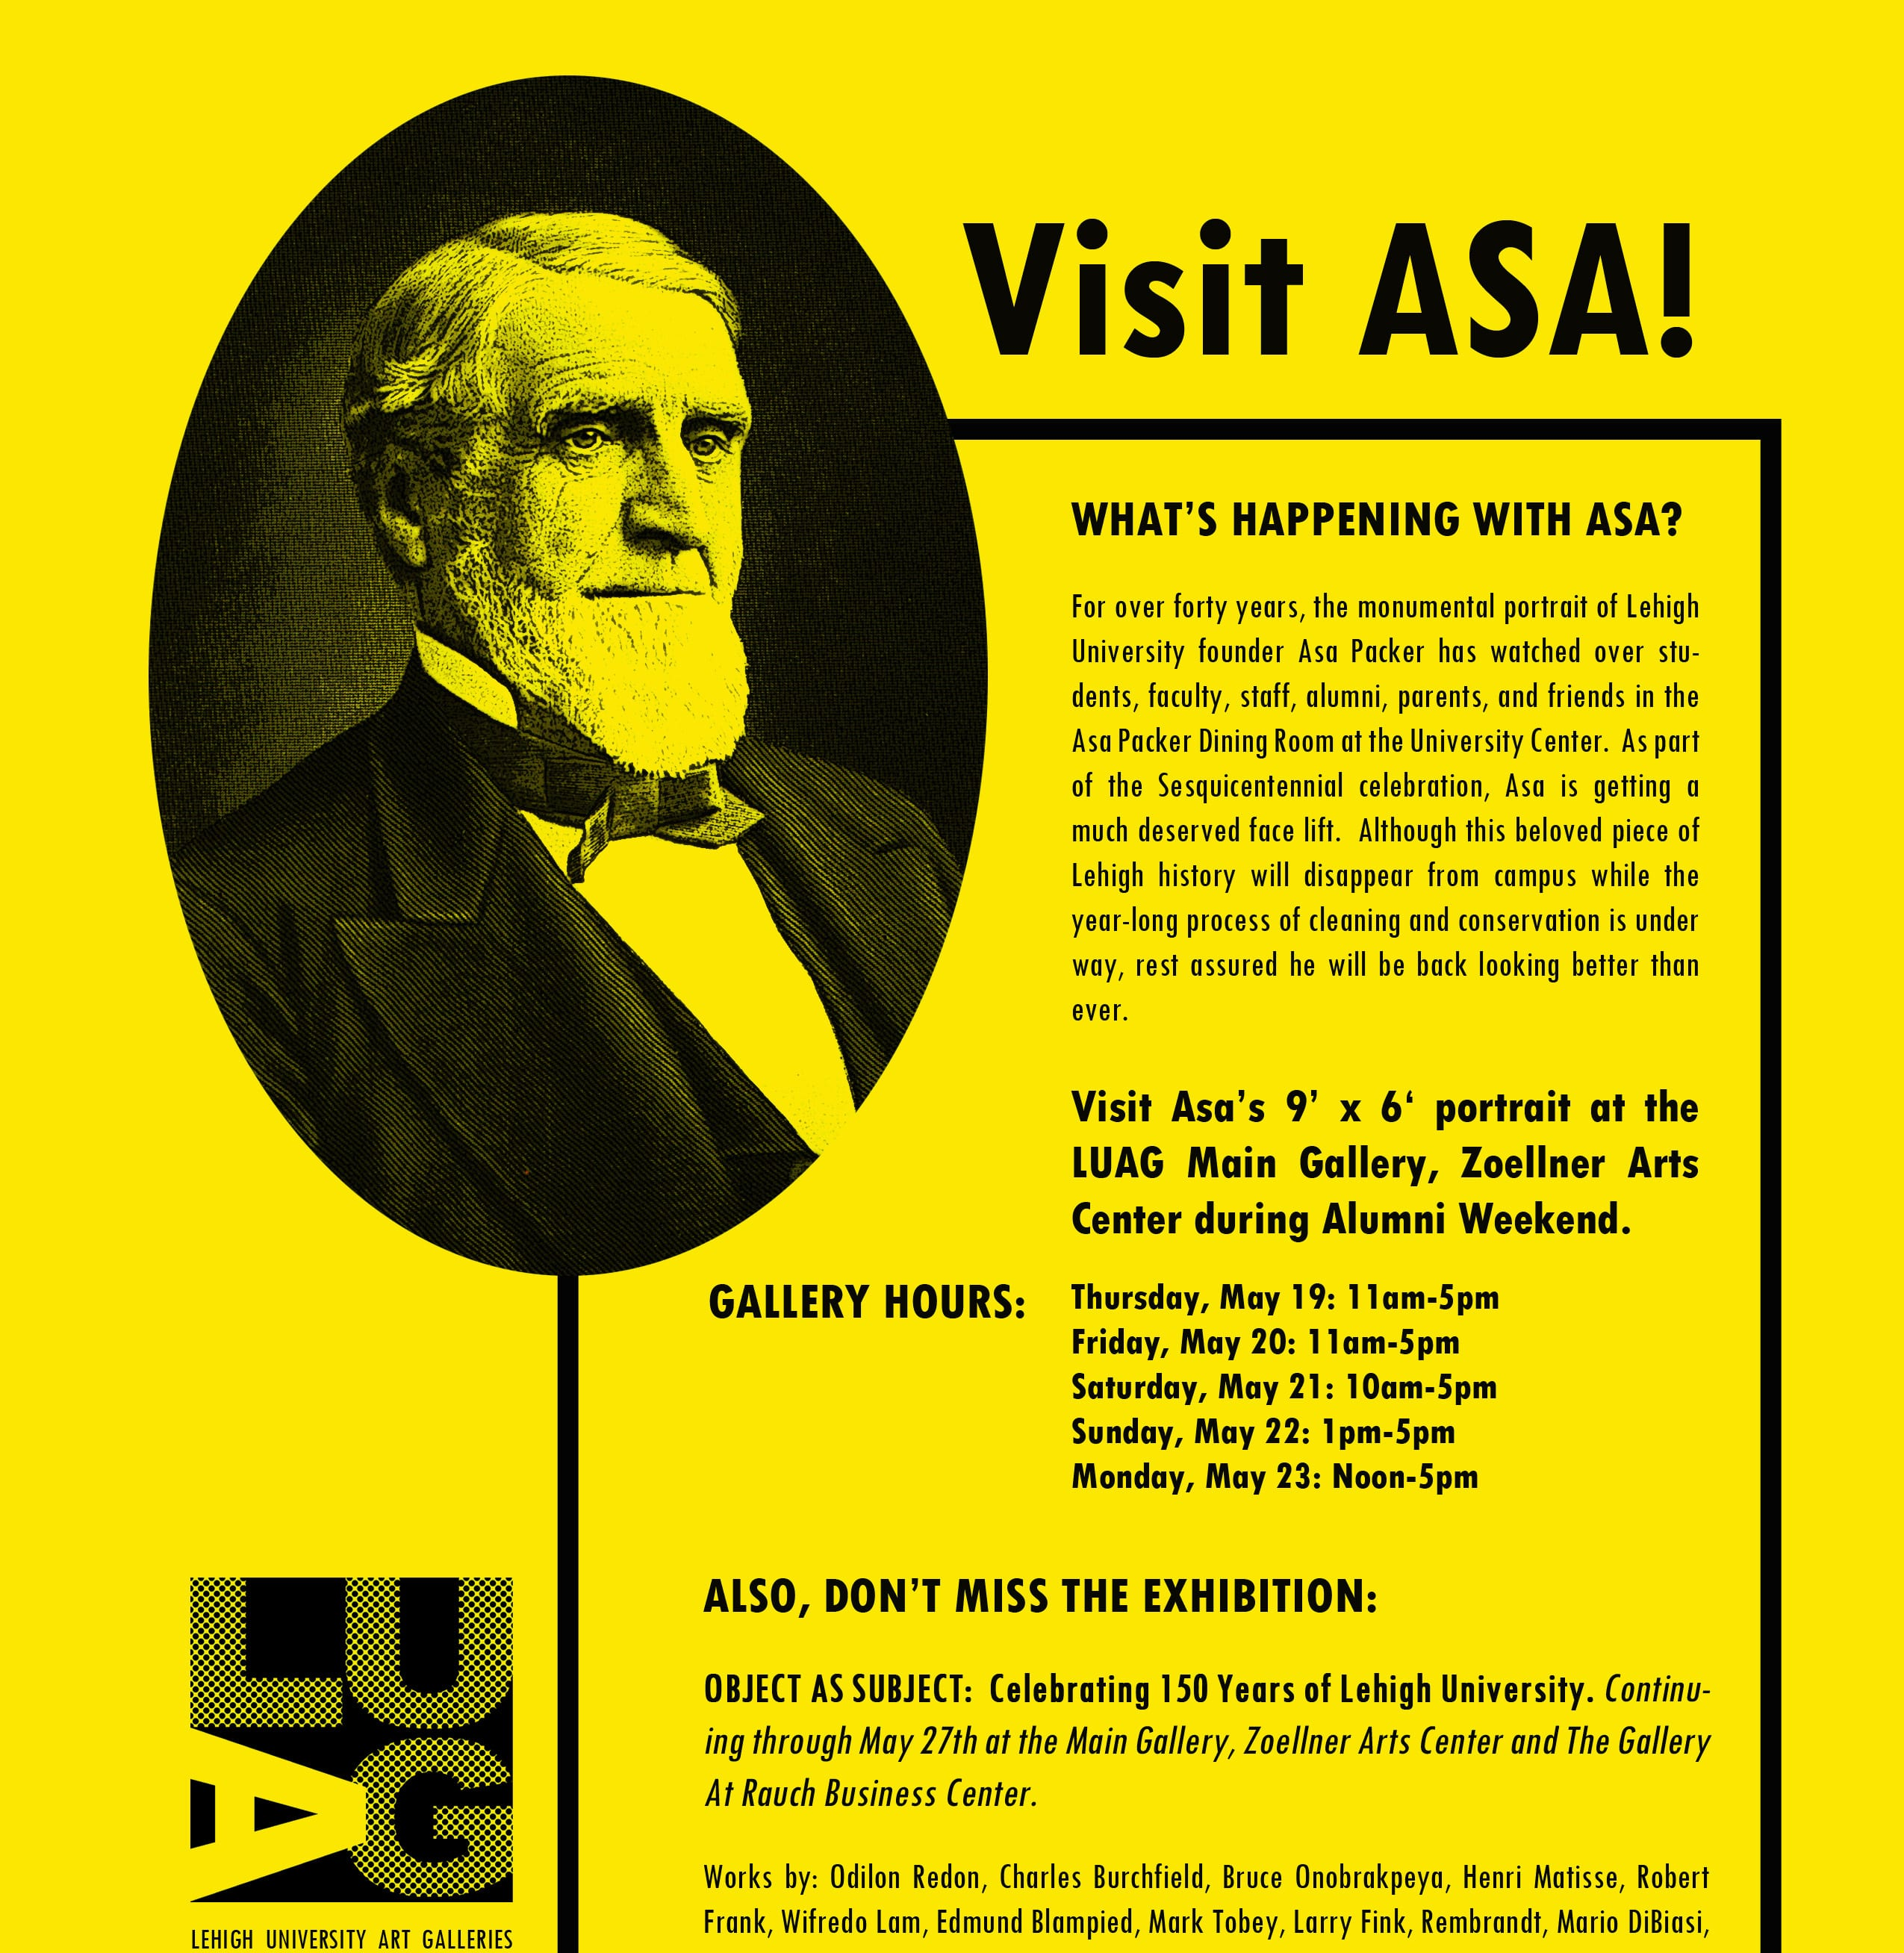 Flyer inviting people to view Asa Packer portrait before restoration